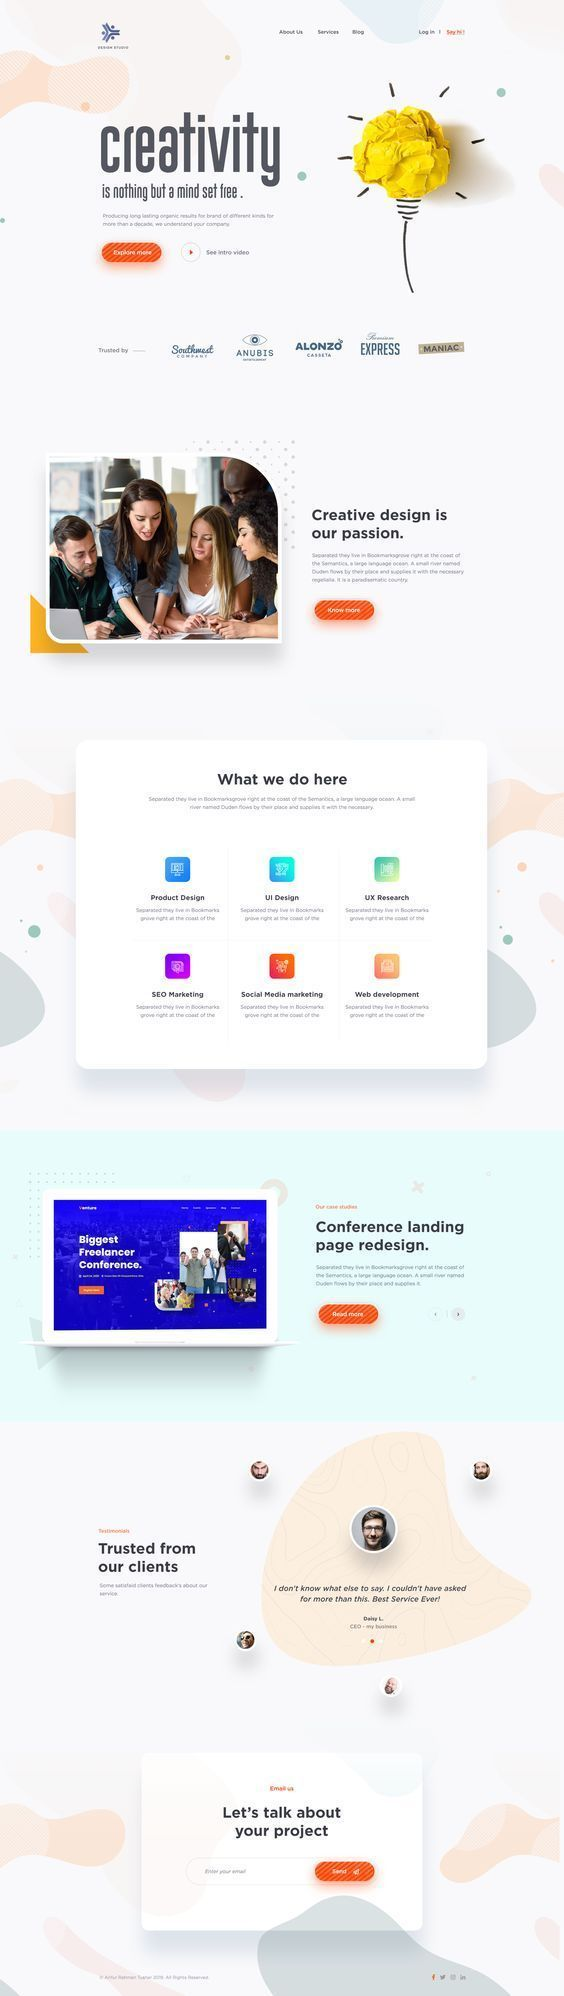 Need A Website To Grow Your Business Request Your Free Quote Tekly Fr In 2020 Wordpress Web Design Creative Web Design Web Design Font